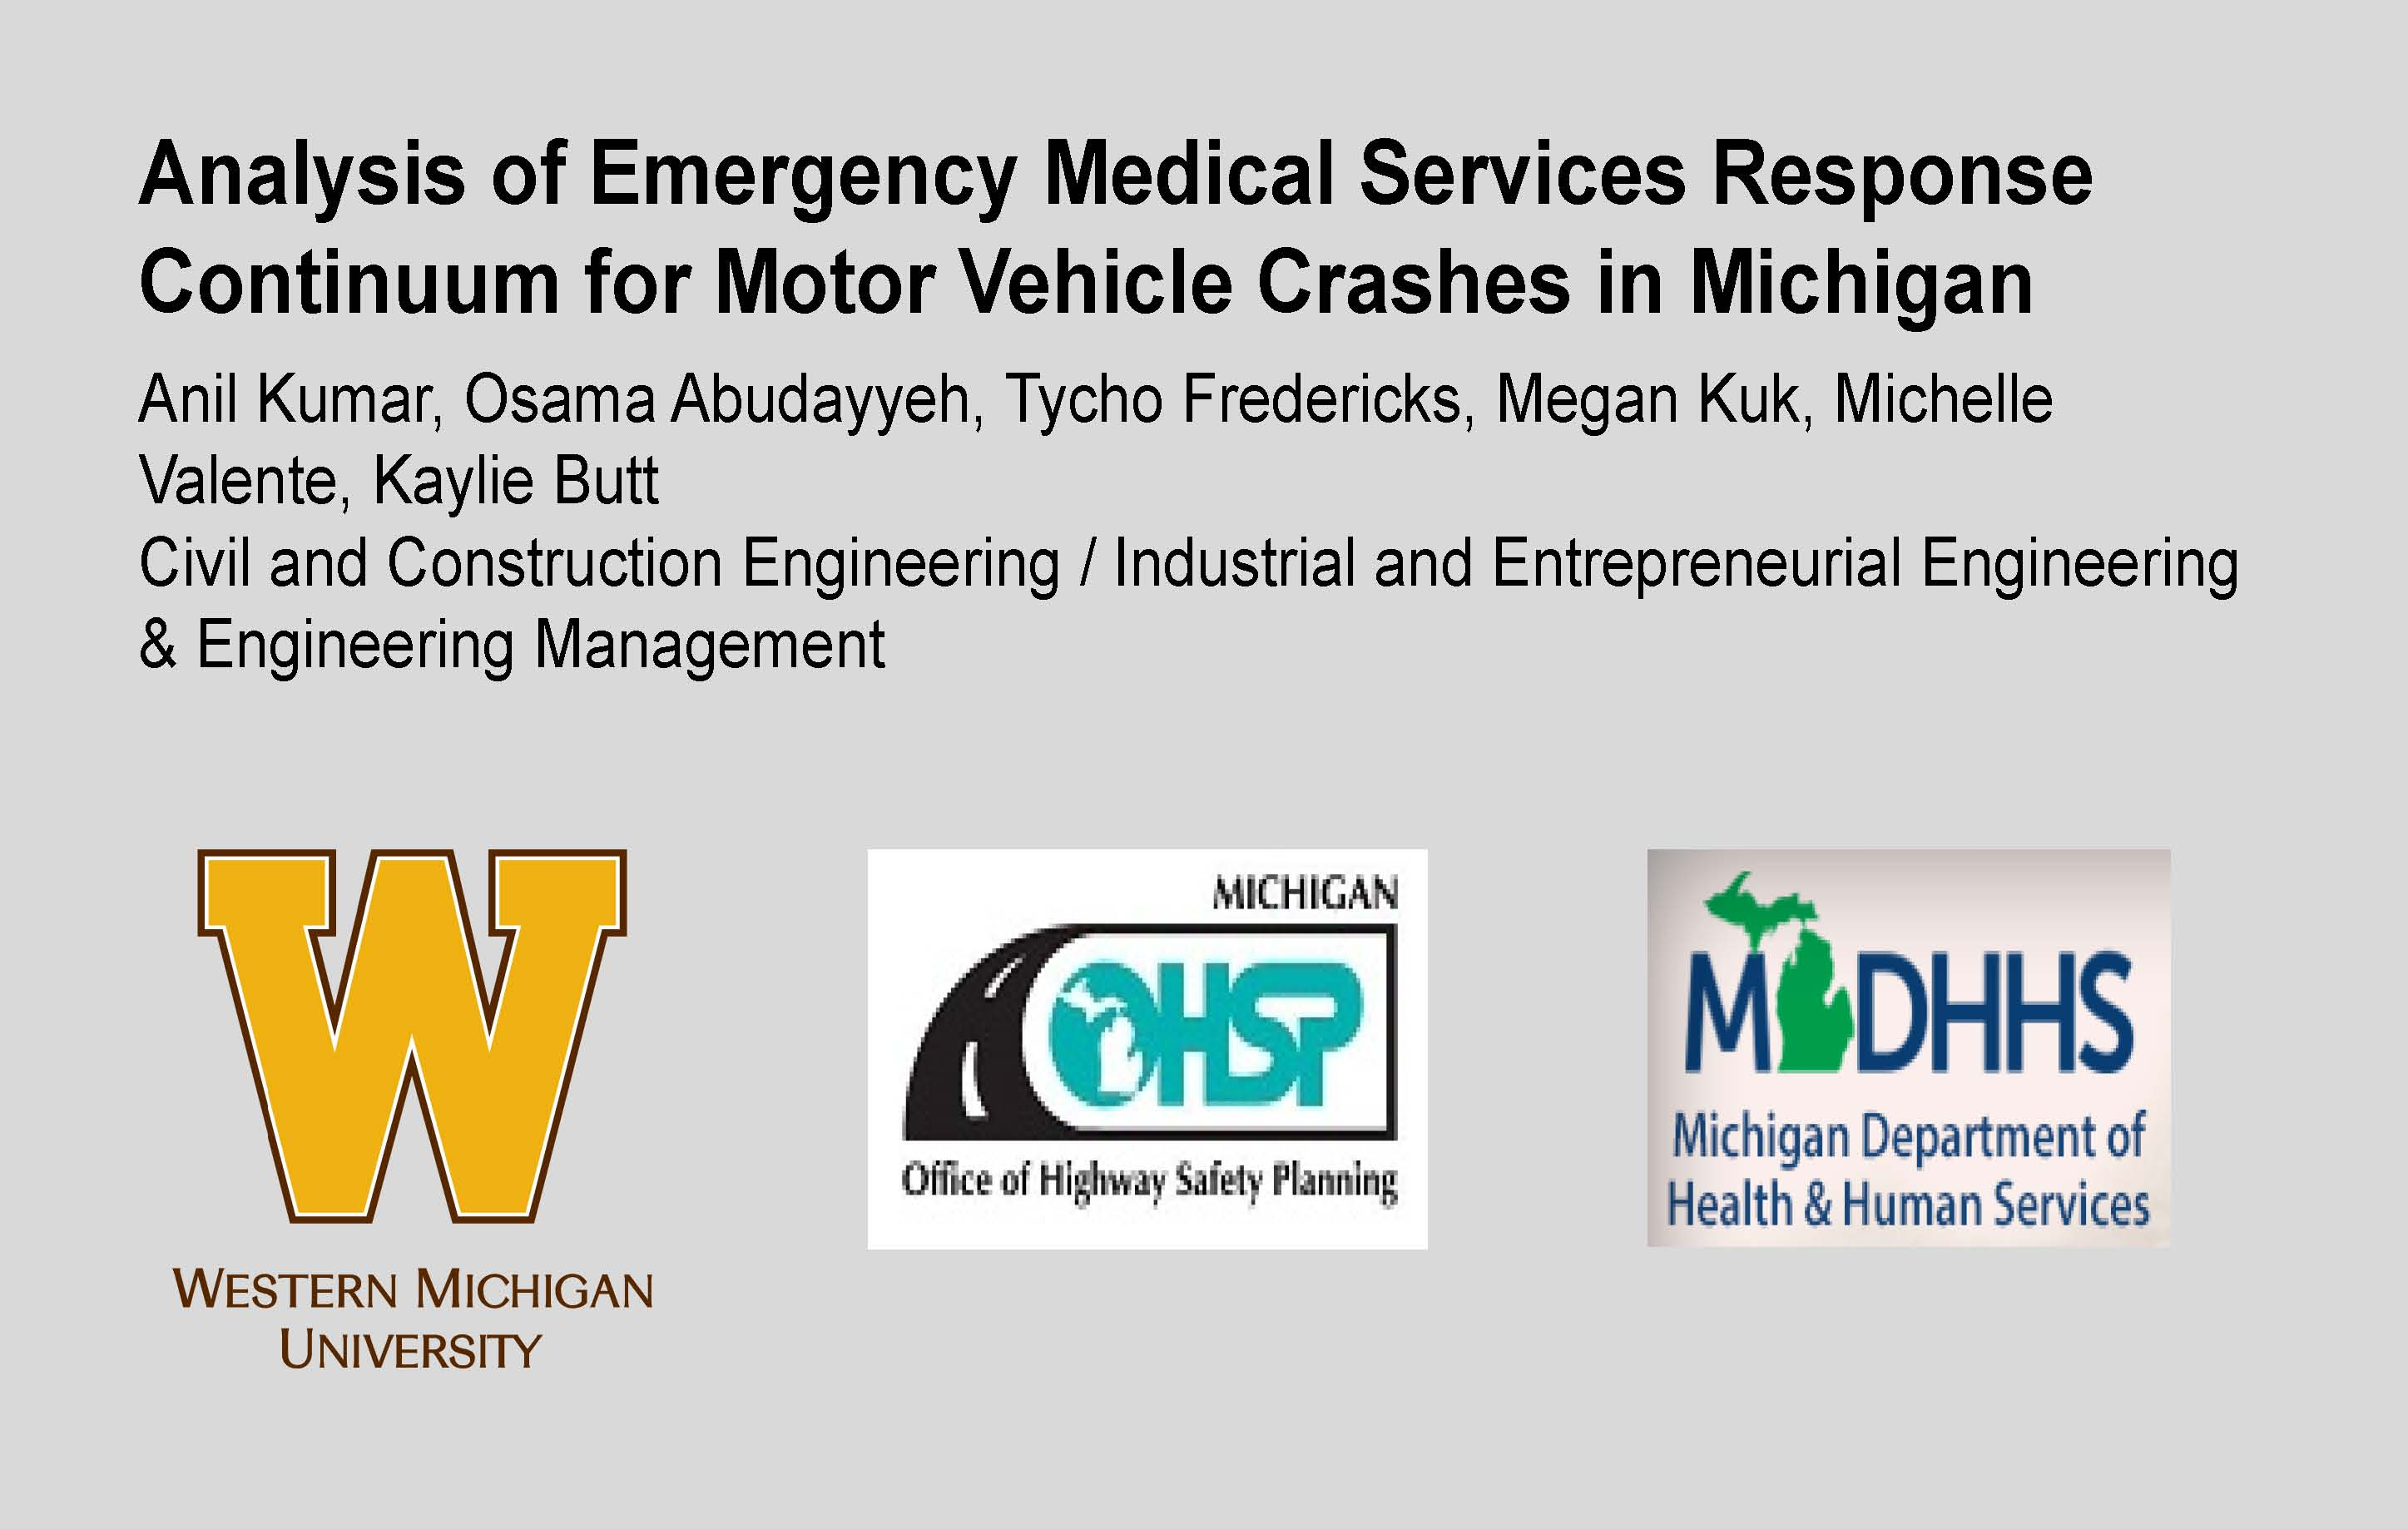 Trend Analyses of Emergency Medical Services for Motor